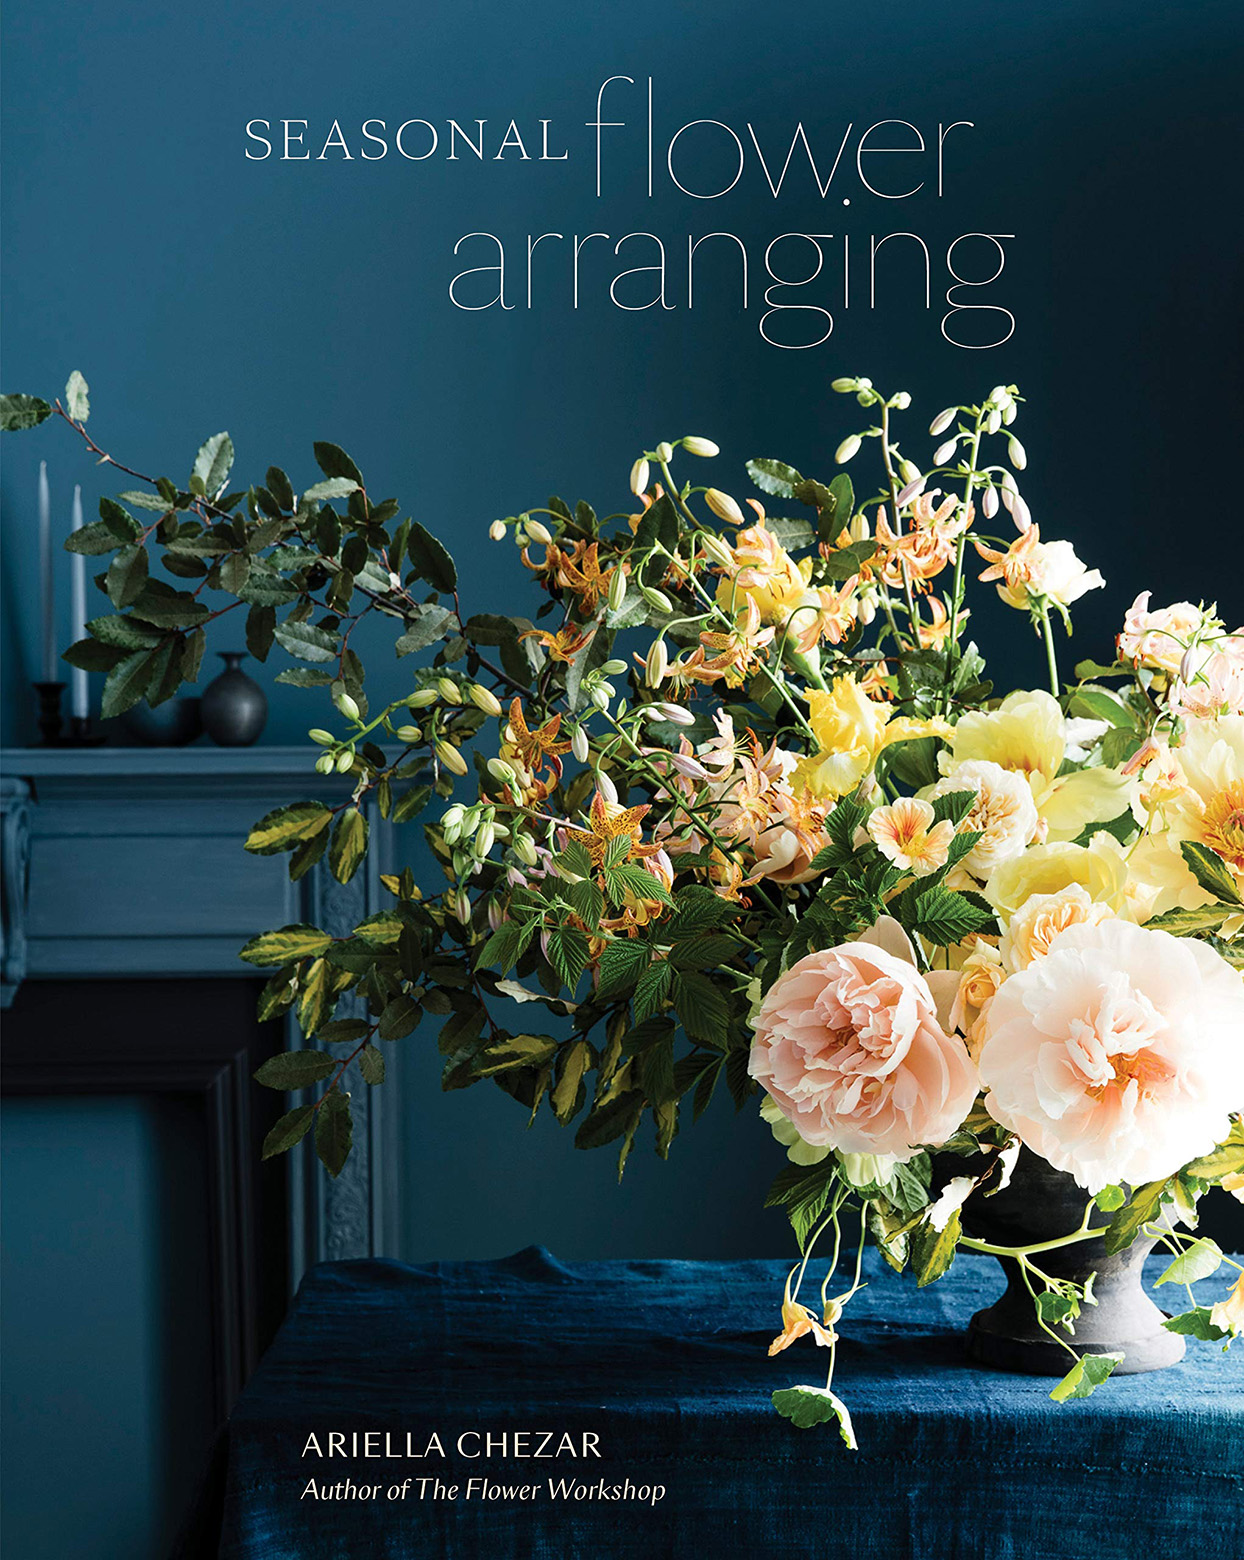 Seasonal Flower Arranging by Ariella Chezar hardcover book with blue background and pastel flower arrangement on cover